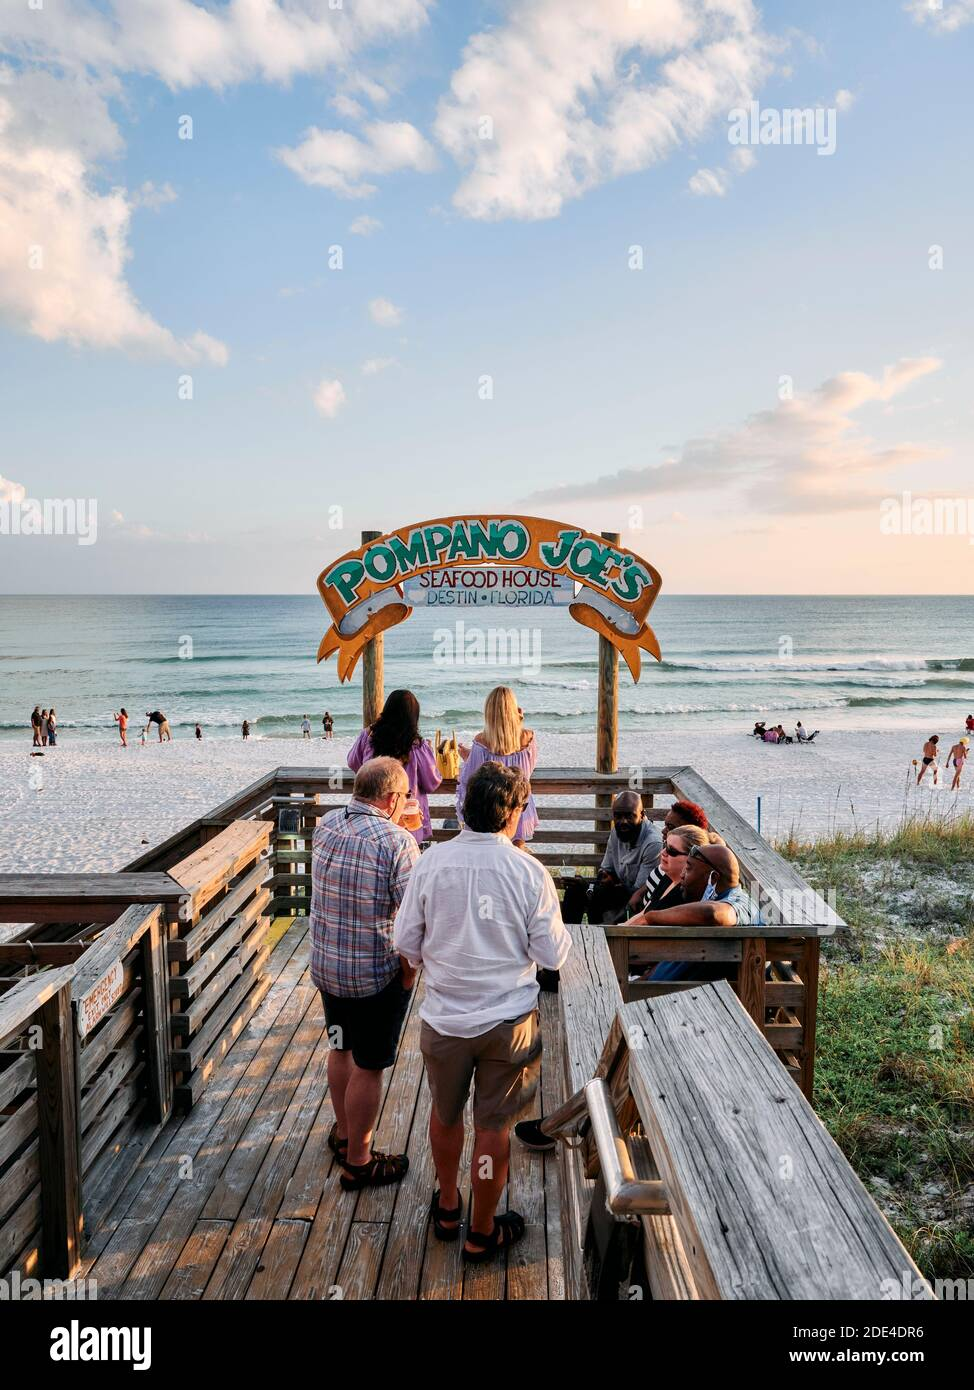 People relaxing on the deck of Pompano Joe's beach bar in south Walton County, in the Florida panhandle, Gulf Coast, Destin Florida, USA. Stock Photo